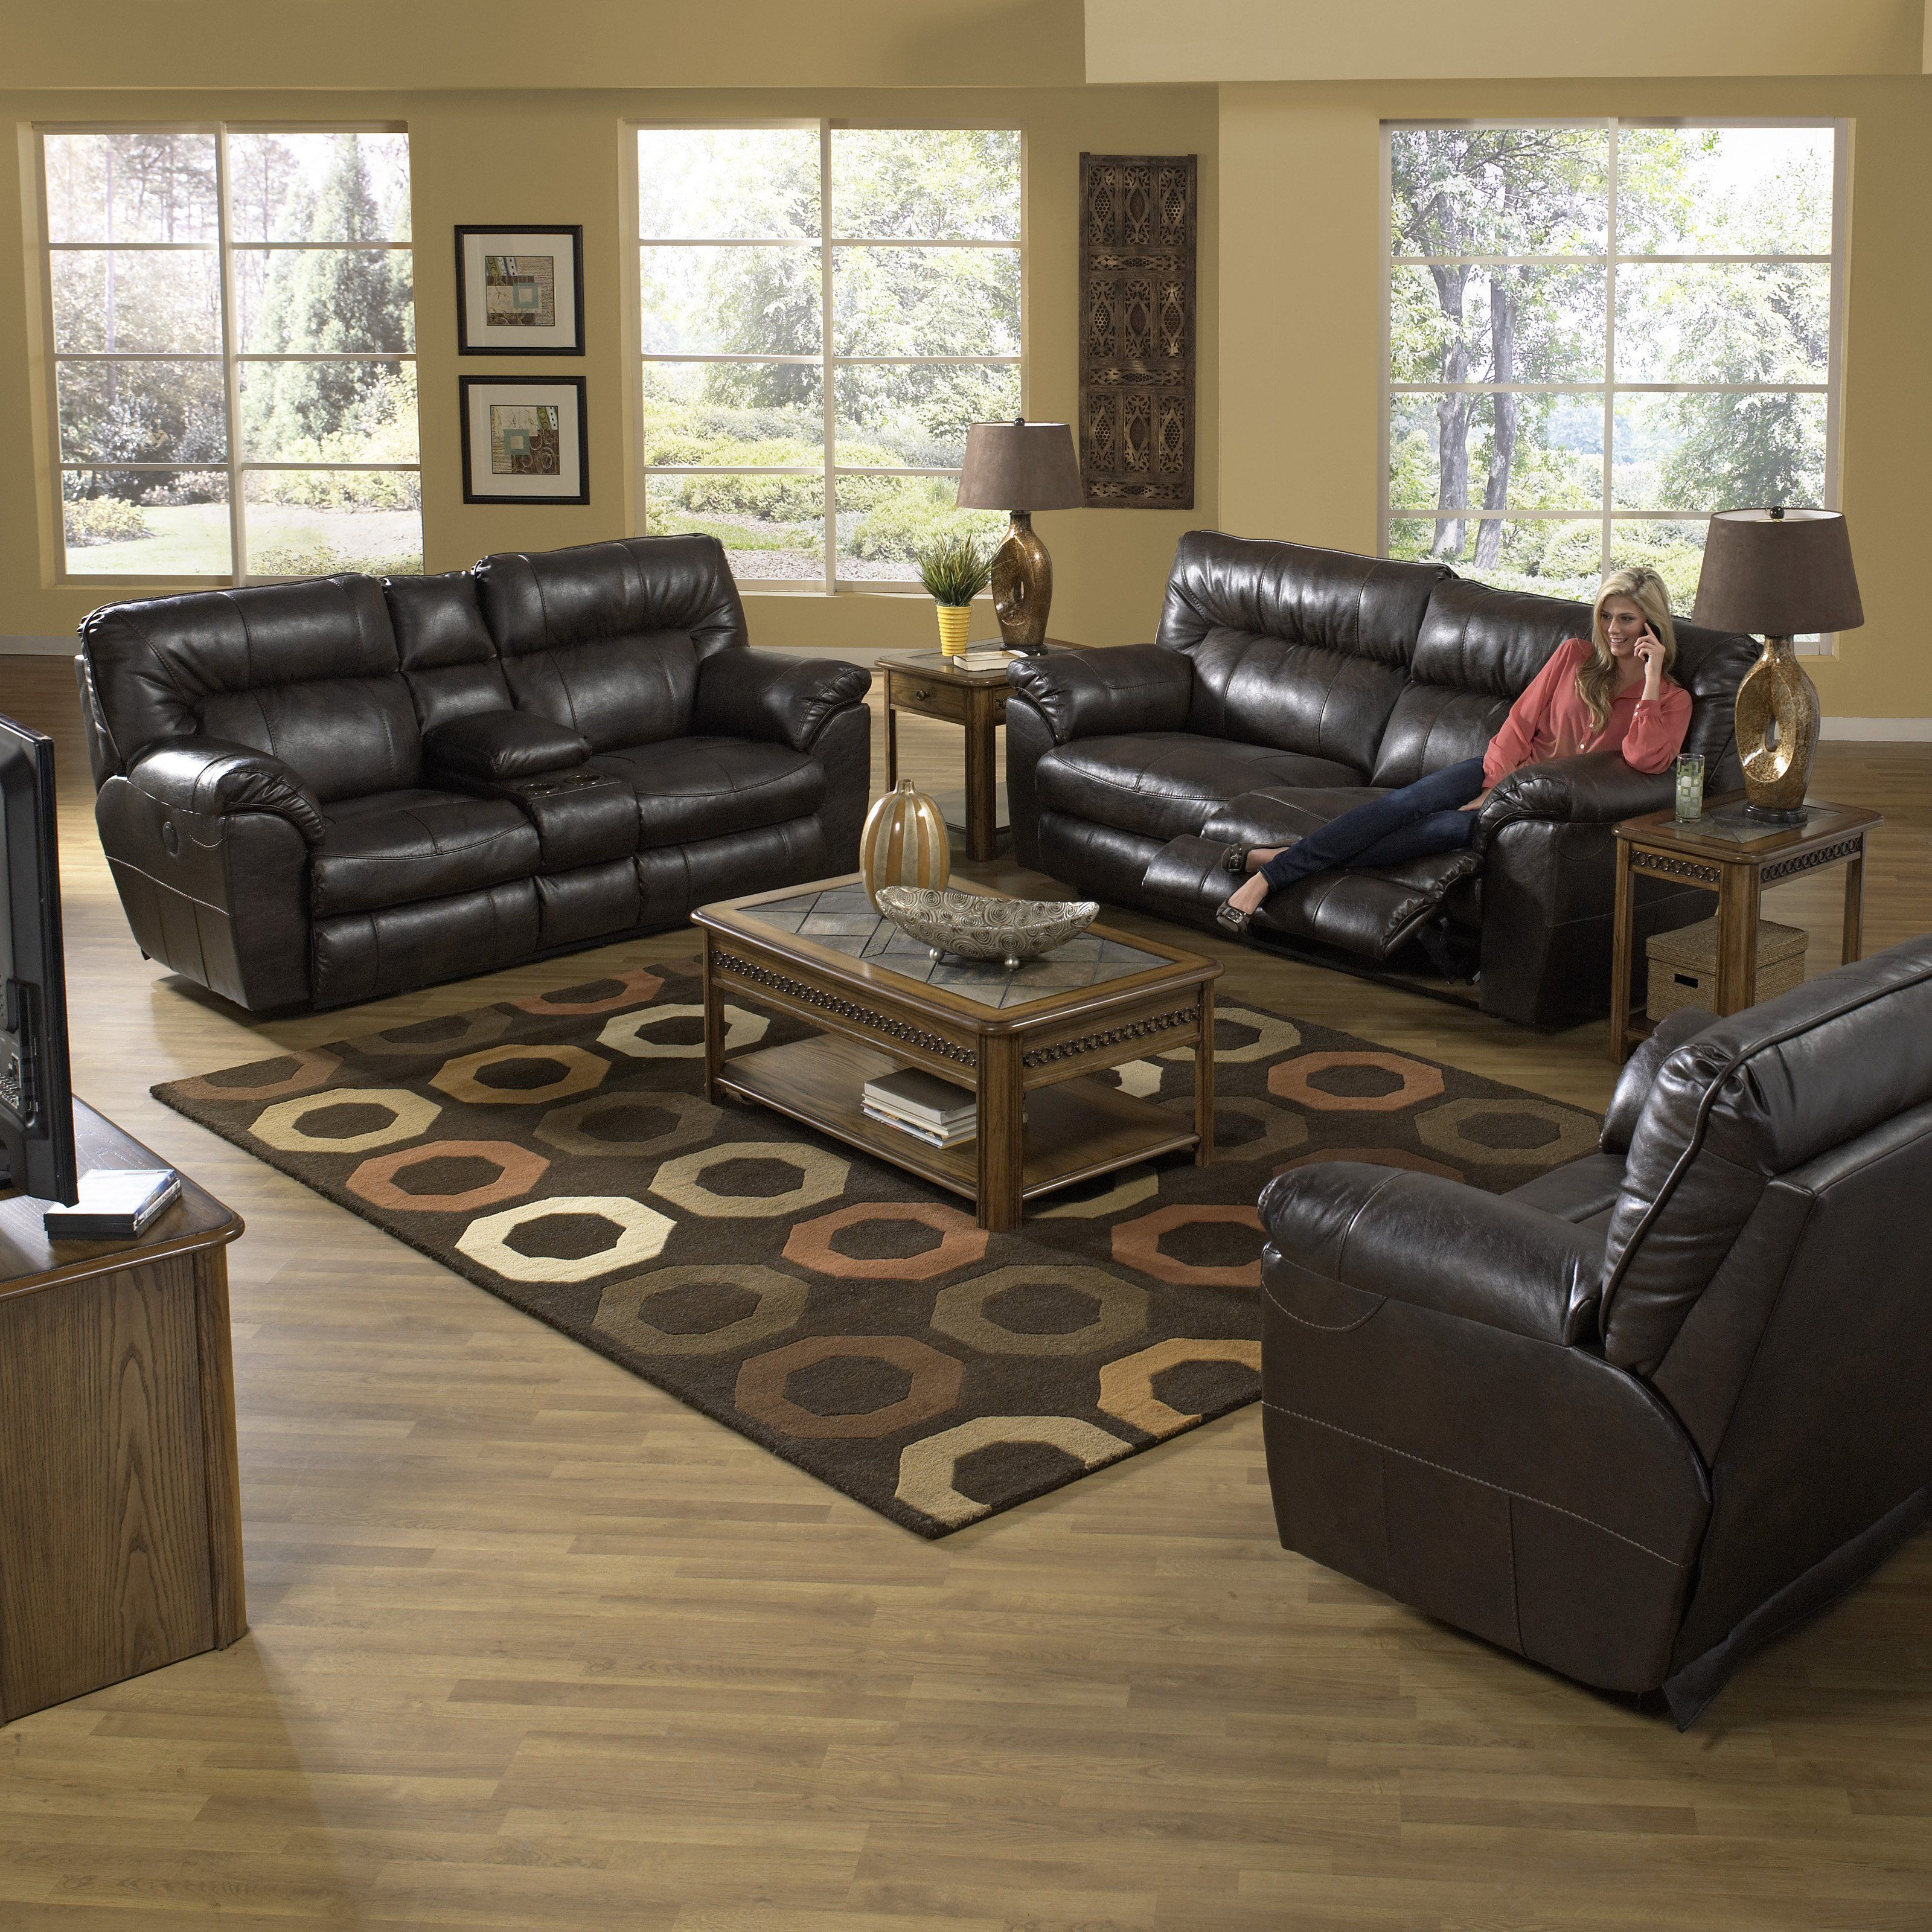 catnapper reclining sofa nolan how to restuff leather cushions and loveseat baci living room